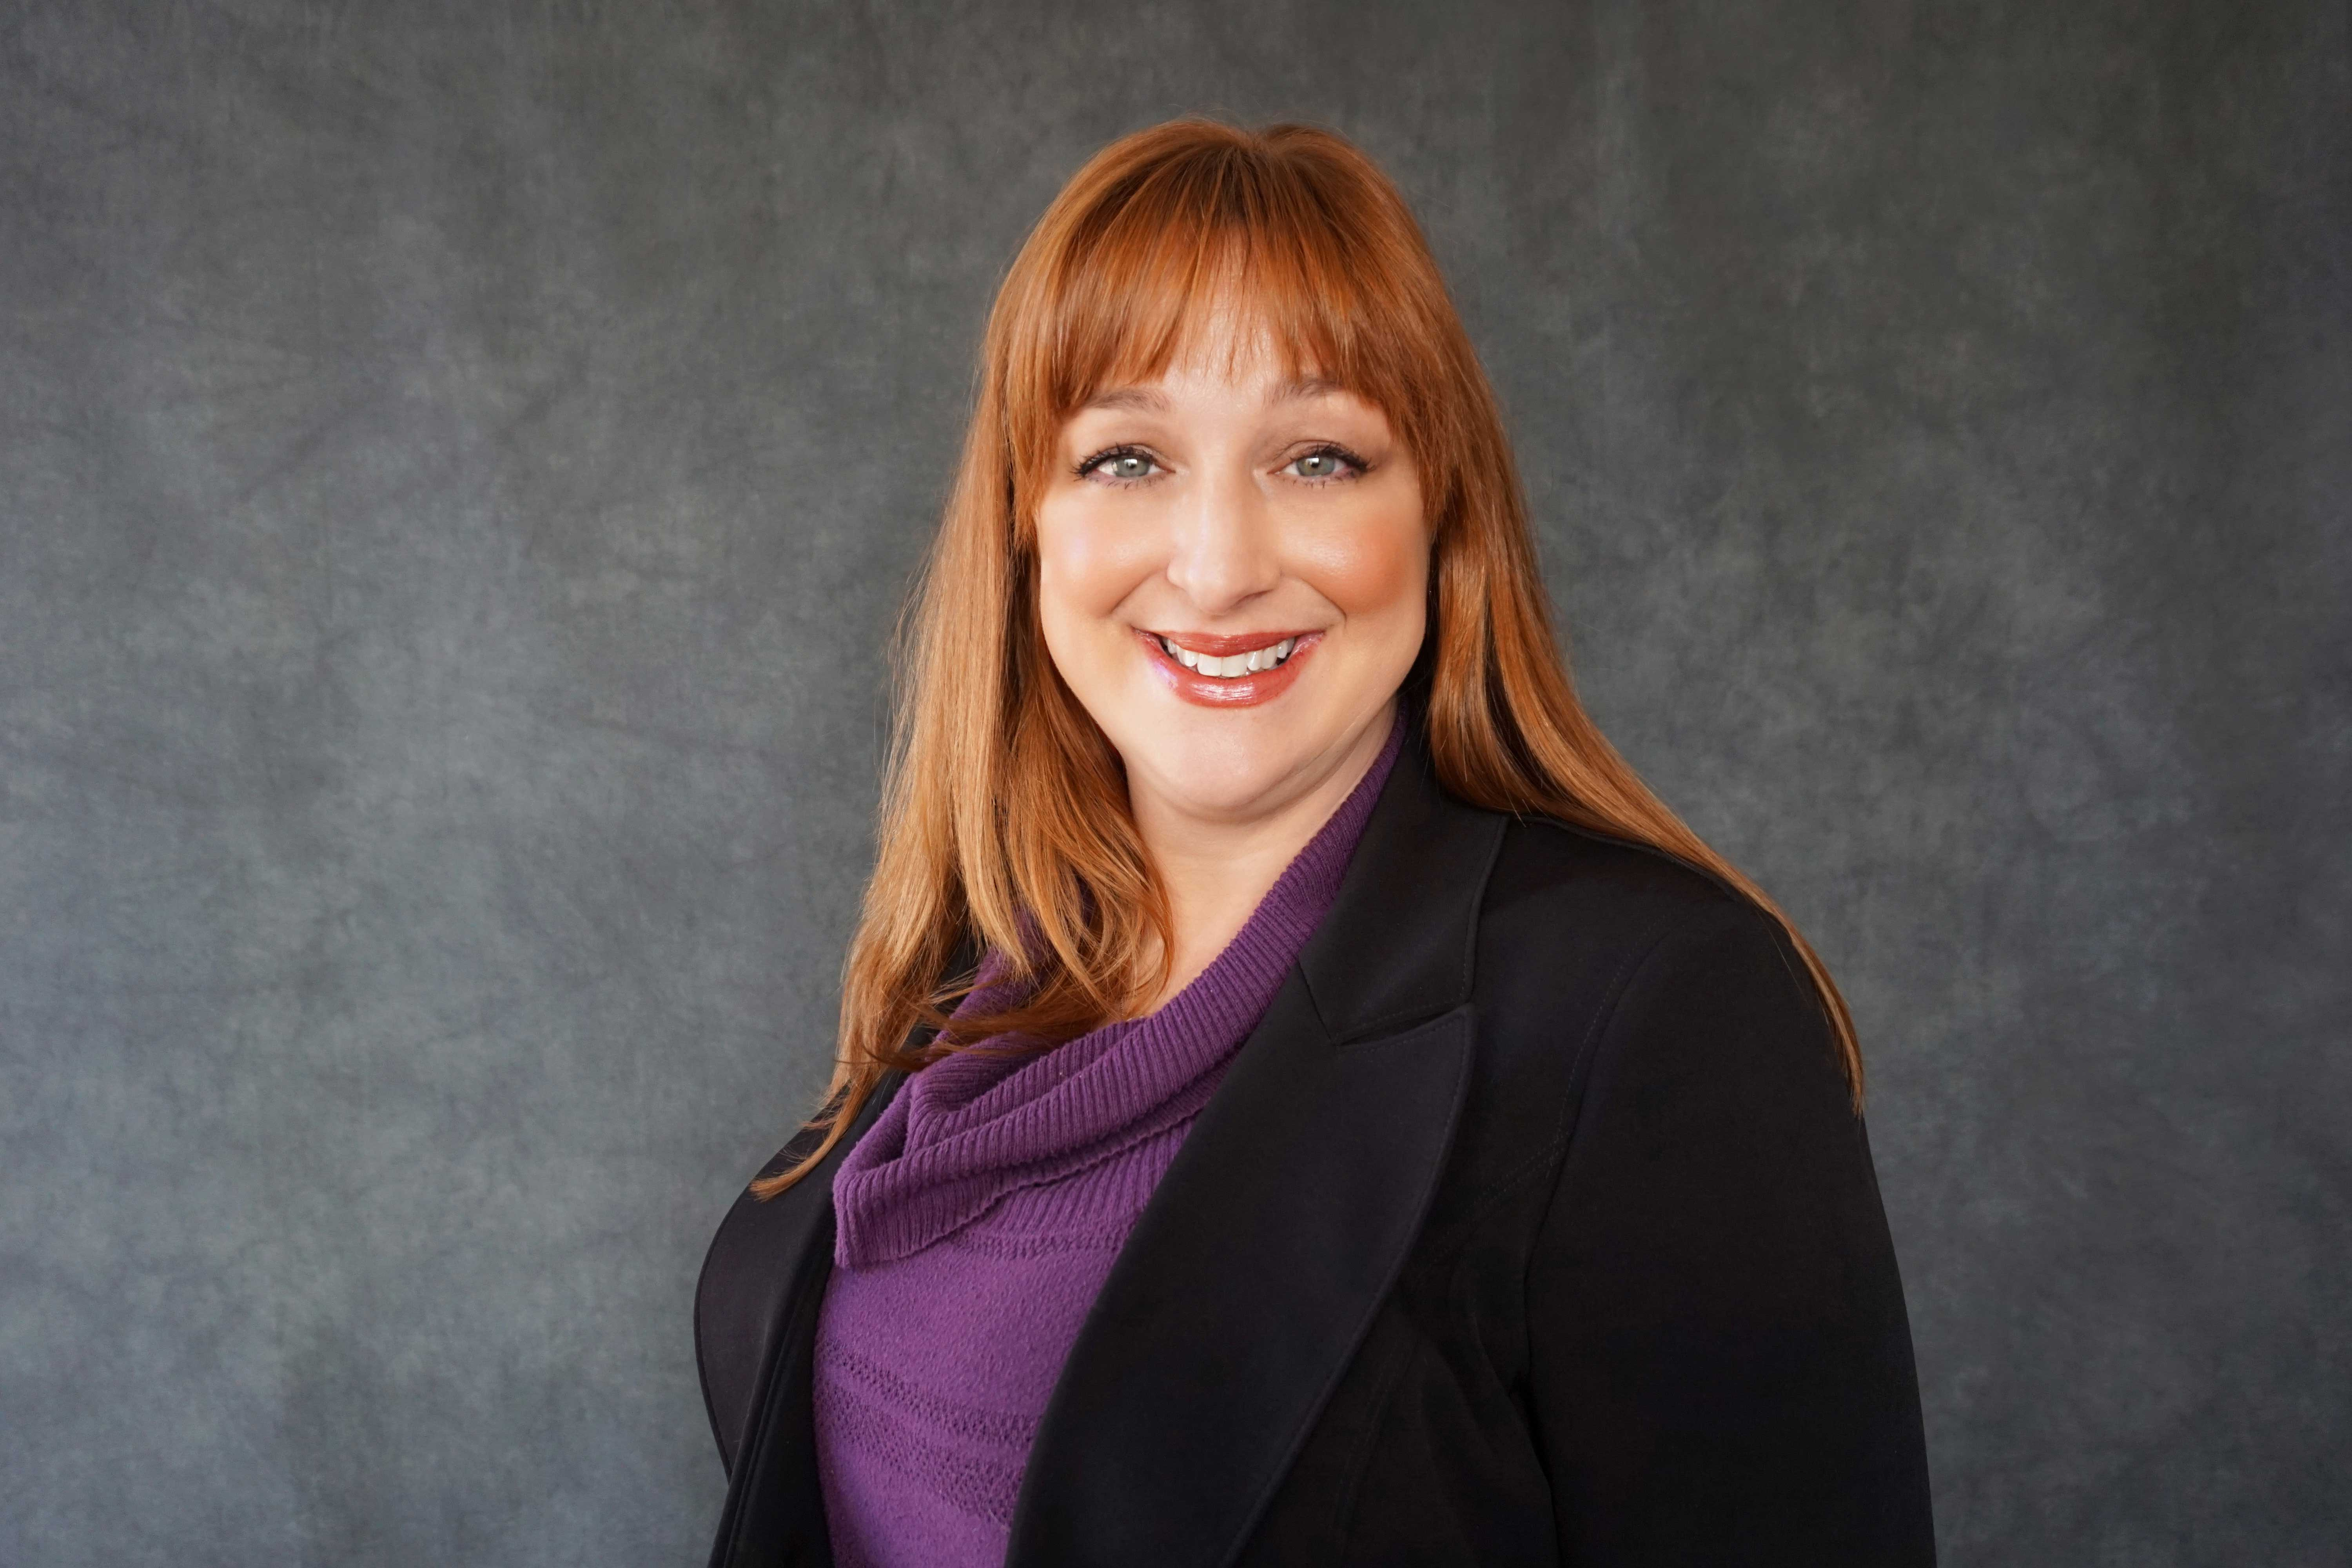 Artesian Valley Health System Welcomes New Provider – Merrill Hoover, FNP-BC